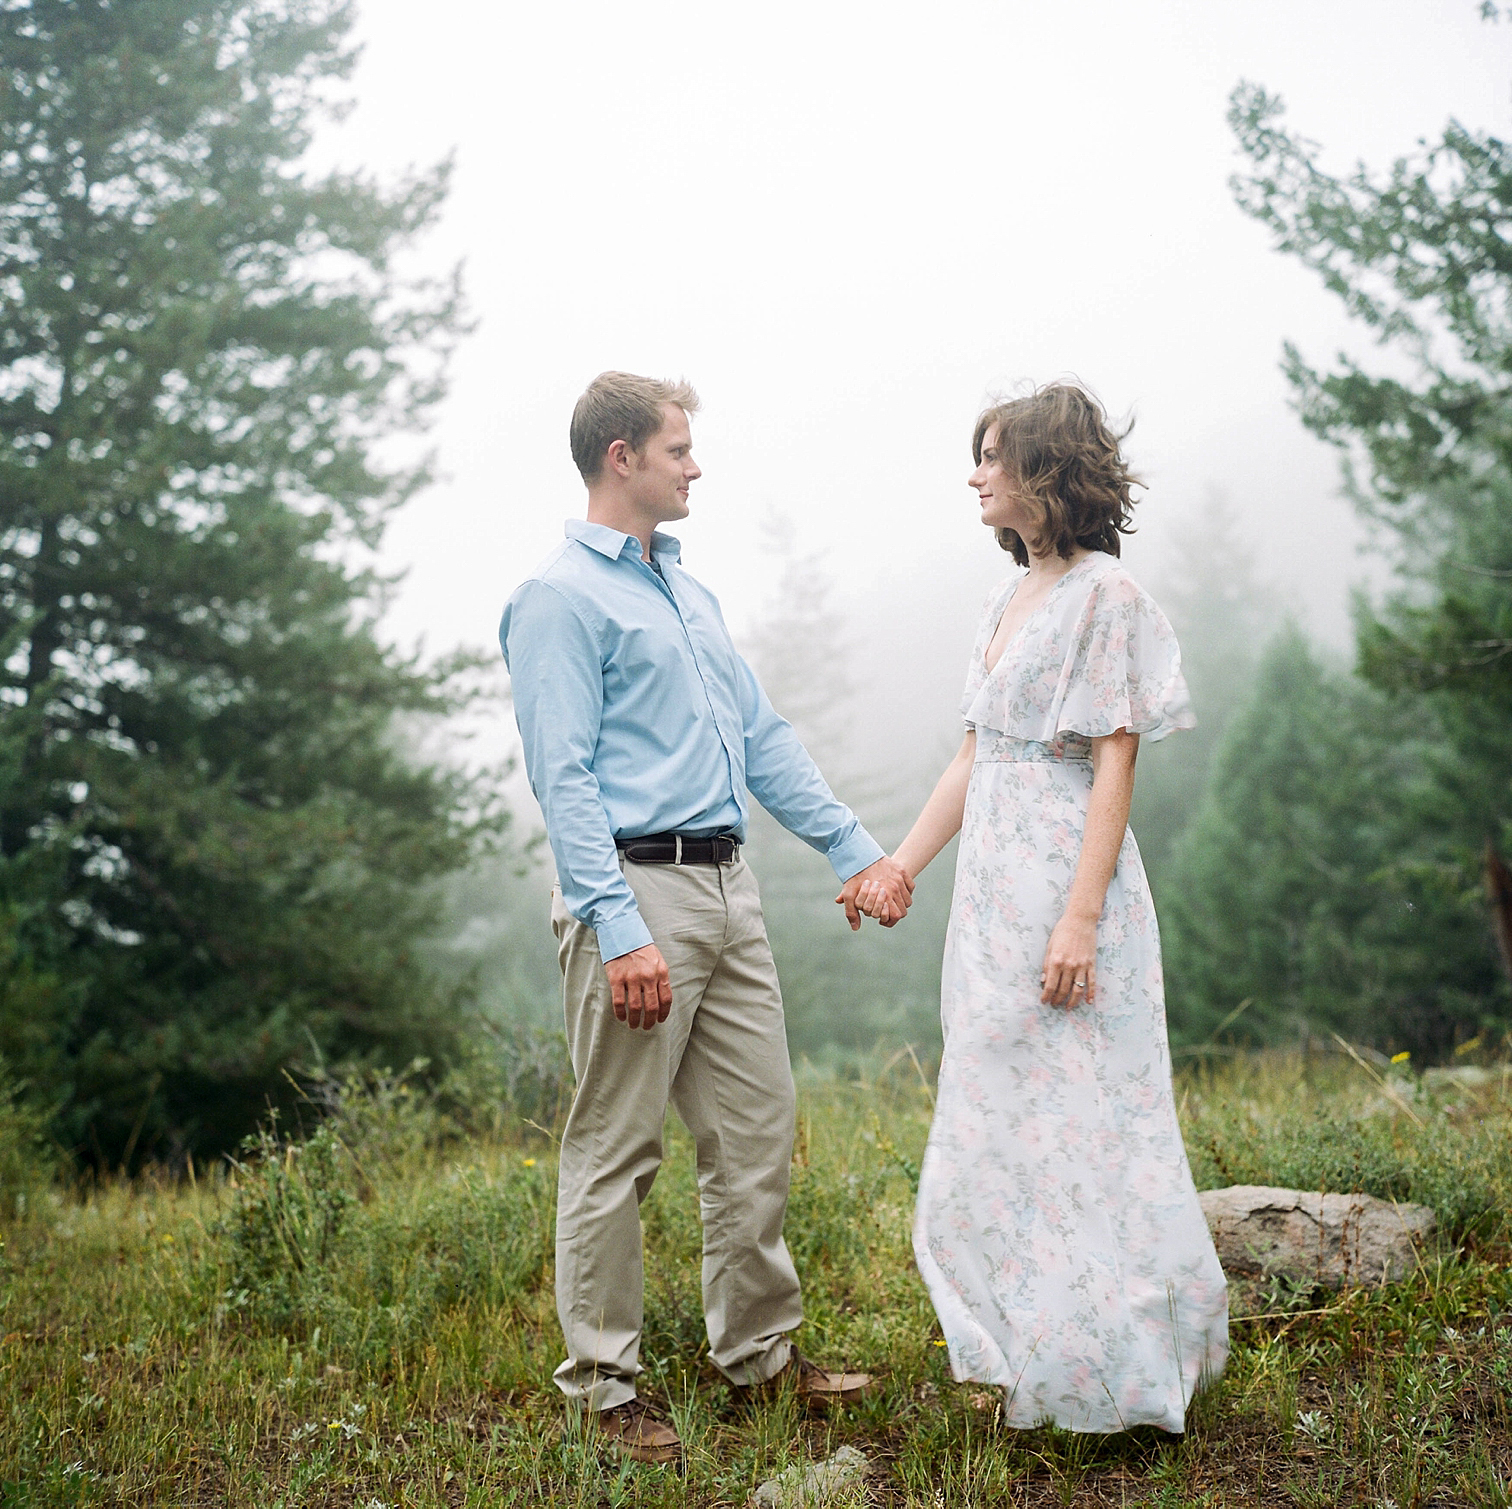 Colorado Engagement Photography, Colorado Engagement Photos, Denver Wedding Photographer, Engagement Photos In Colorado, Film Photographers In Colorado, Rolleiflex Portraits, Film Wedding Photographers, Best Engagement Photos In Colorado, Danielle DeFiore Photographers, Golden Colorado Engagement Photos, Couple Holding Hands On Mountain Top